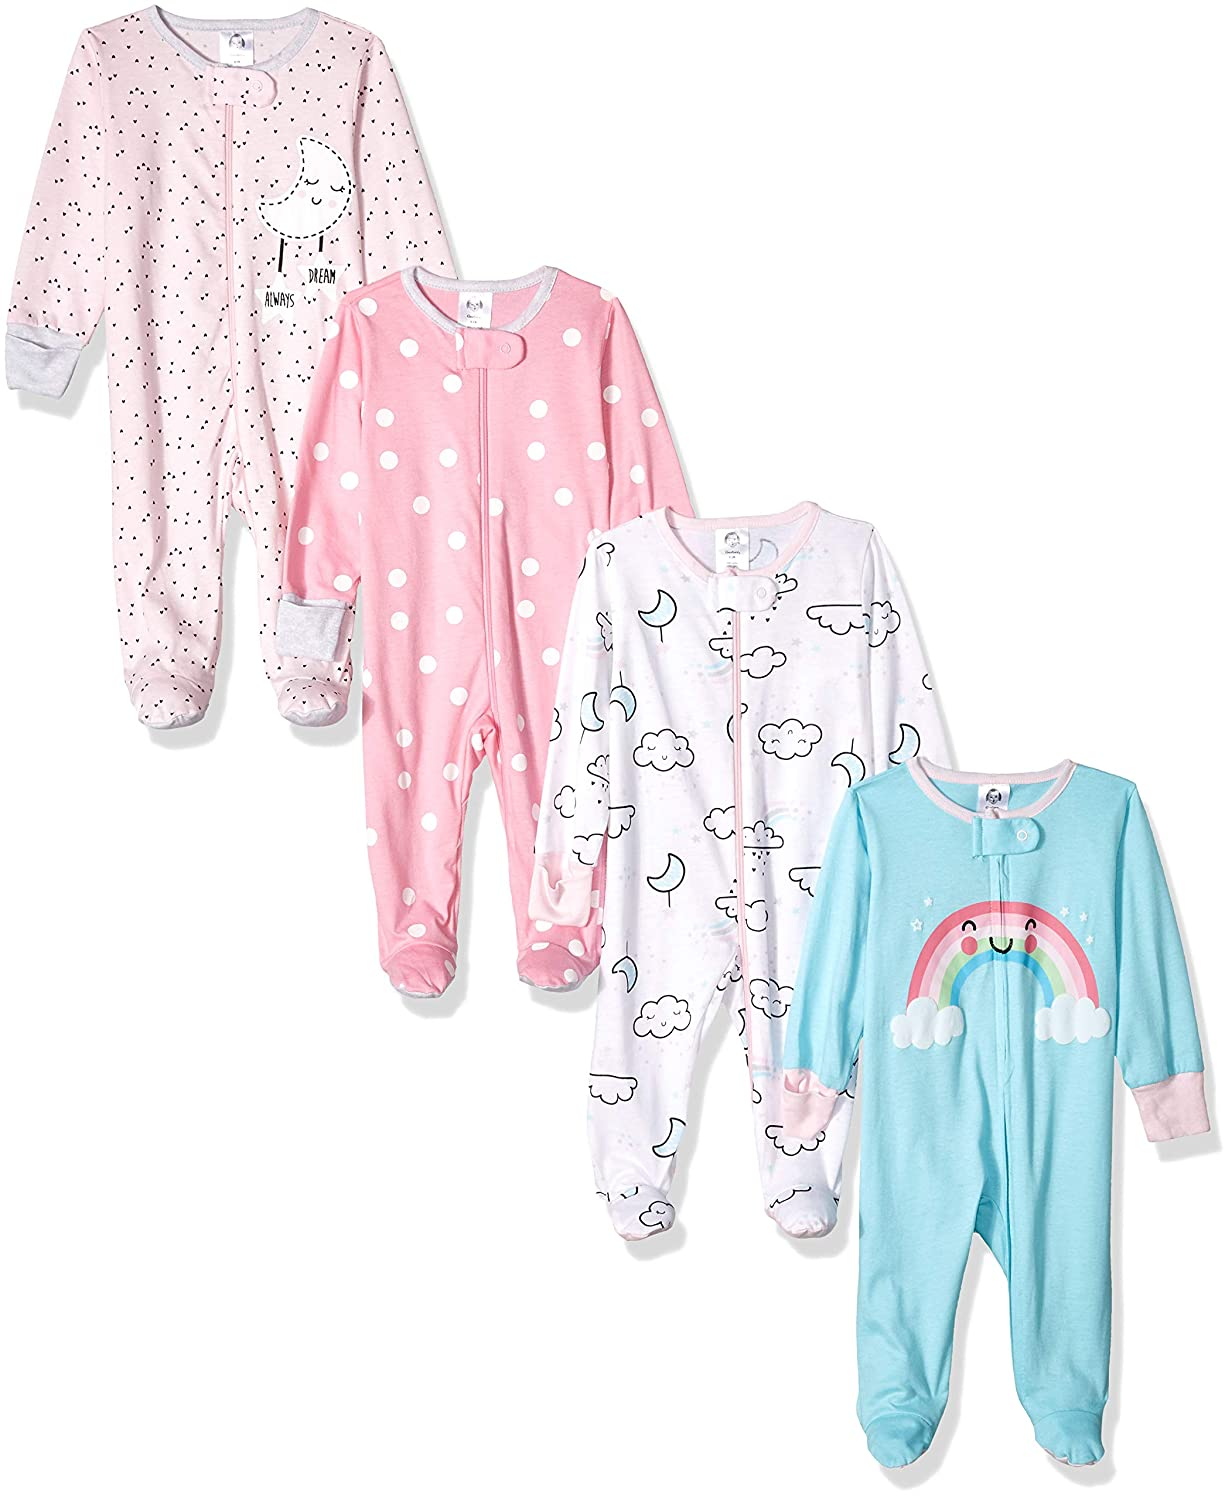 Gerber Baby Girls' 4-Pack Sleep 'N Play Gerber Children' s Apparel